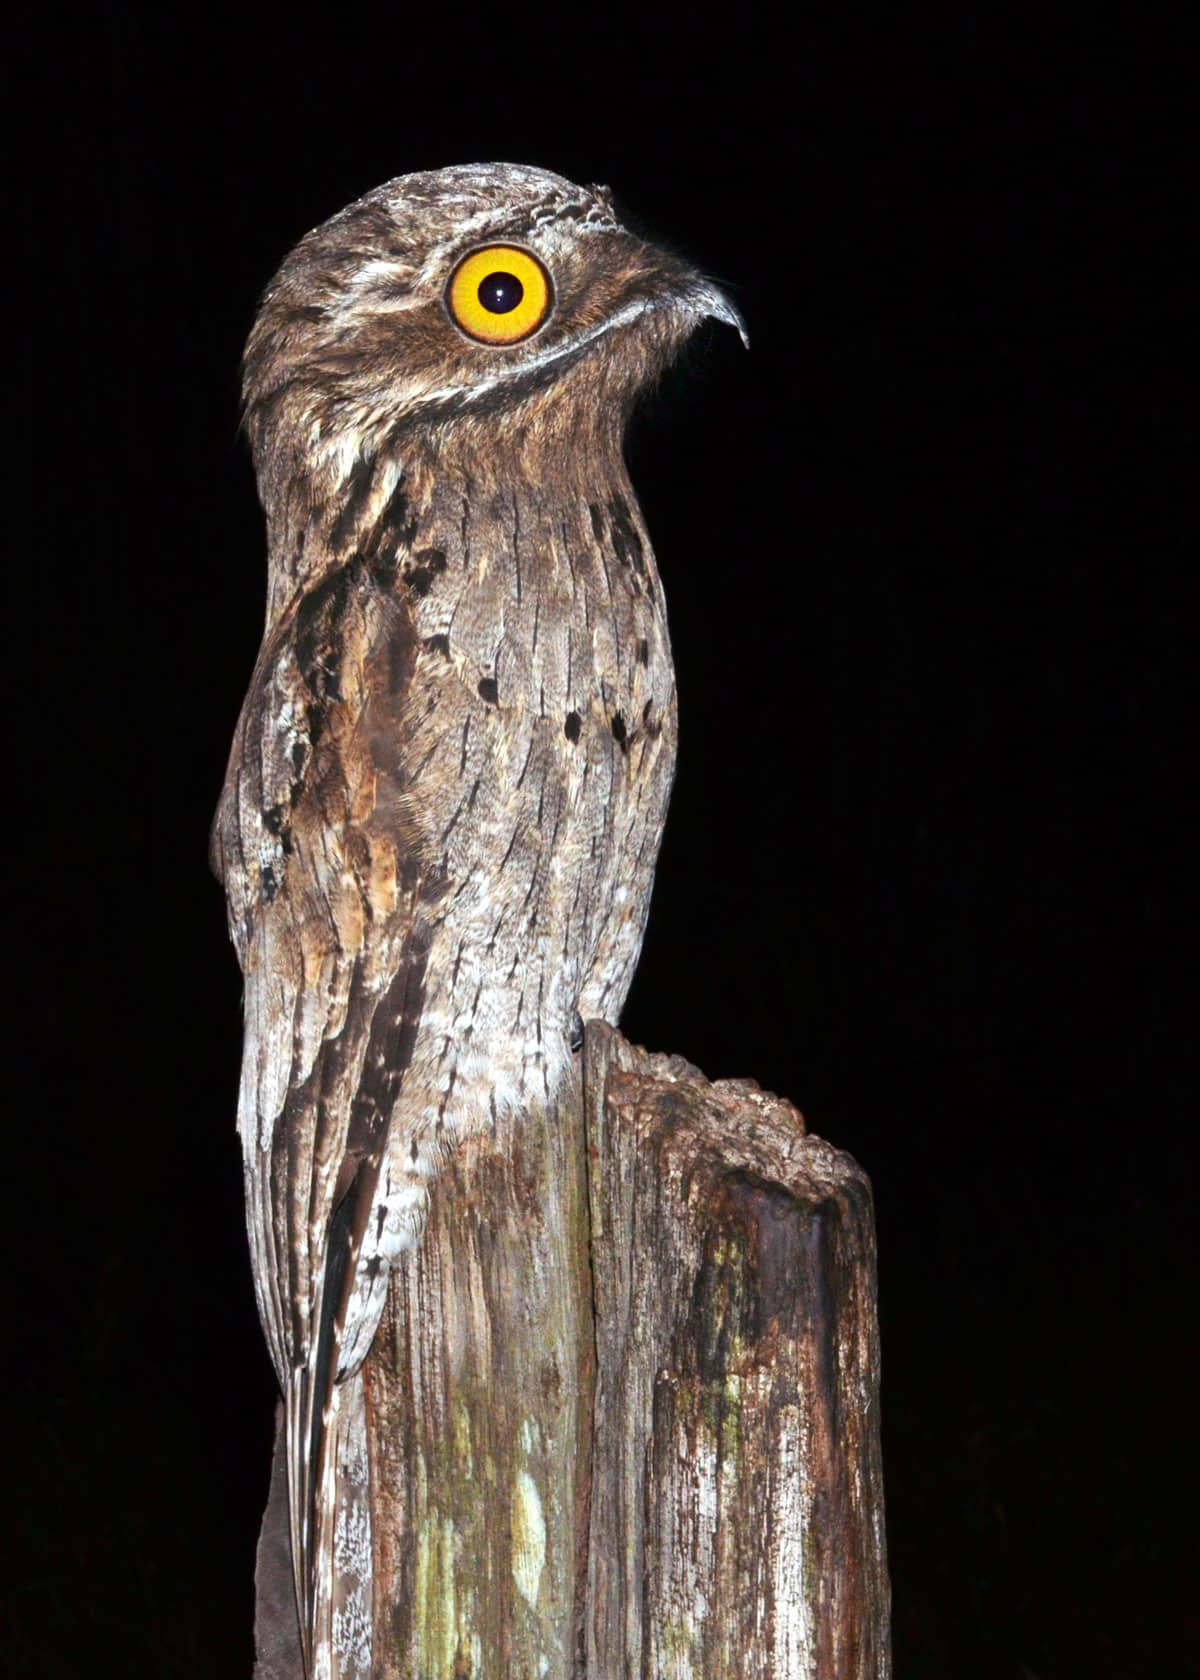 How big is the potoo?